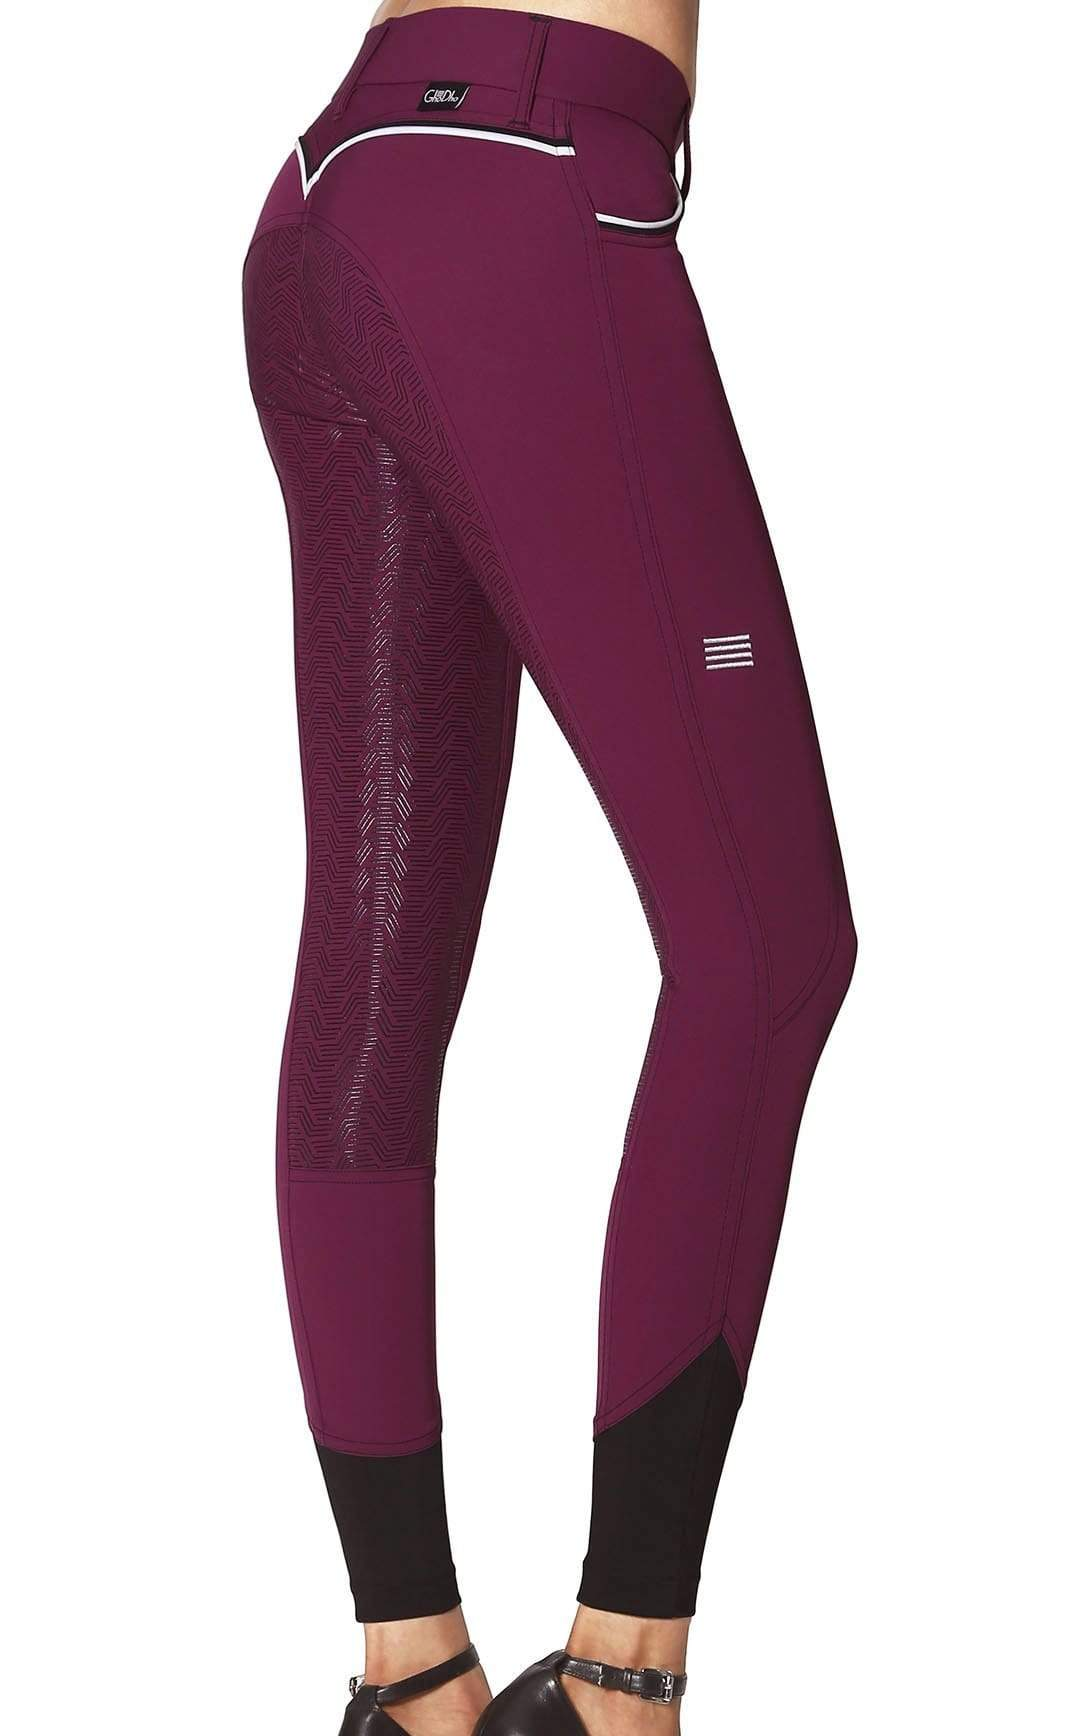 GhoDho Breeches sz 32 / Plum GhoDho Adena Full Seat Breeches equestrian team apparel online tack store mobile tack store custom farm apparel custom show stable clothing equestrian lifestyle horse show clothing riding clothes horses equestrian tack store